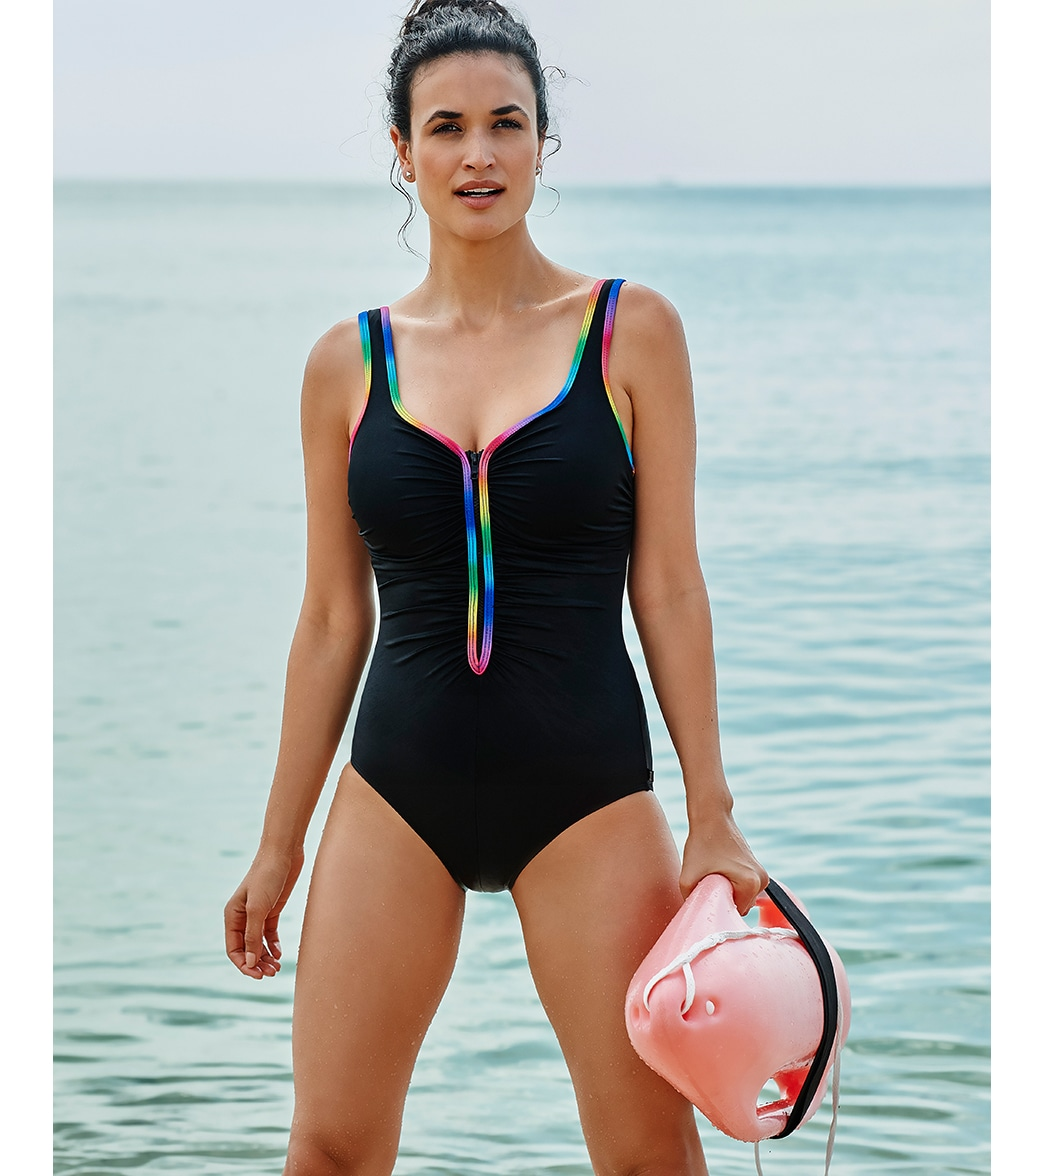 15f5124bc08 Reebok Women s Sunglow Zip Front Chlorine Resistant One Piece Swimsuit at  SwimOutlet.com - Free Shipping